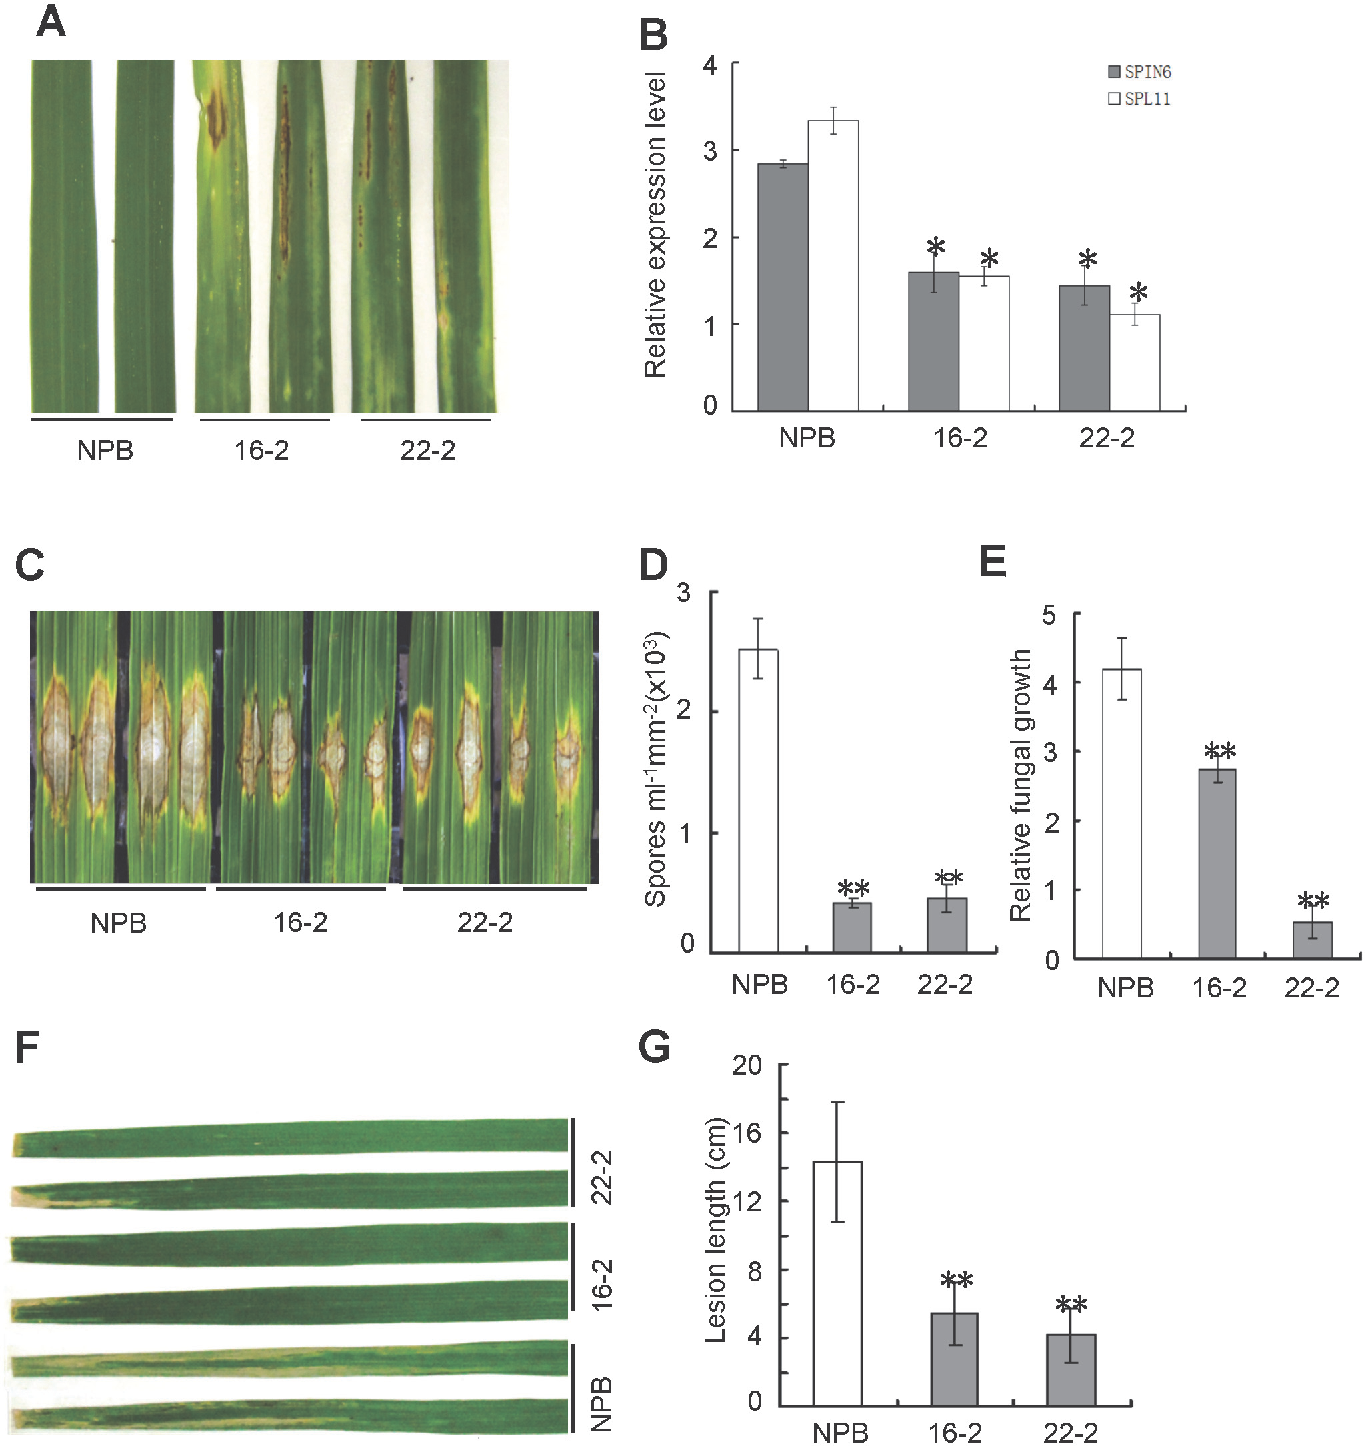 Figure 3. Knock-down of Spin6 results in cell death phenotypes and enhanced resistance to the rice blast pathogenM. oryzae and the bacterial blight pathogen Xoo in rice. (A)Cell death phenotypes of the Spin6RNAi silencing lines. Japonica rice Nipponbare (NPB) is the wild type, and 16–2 and 22–2 are Spin6RNAi lines. (B) The relative expression level of Spin6 and Spl11 in the wild type and Spin6RNAi lines as determined by real-time quantitative PCR. The data were normalized with ubiquitin. (C) Lesion-size of the Spin6RNAi lines and the wild type plants inoculated withM. oryzae isolate RO1–1. (D)Number ofM. oryzae spores produced by lesions on the Spin6RNAi lines and the wild type. (E)RelativeM. oryzae biomass in lesions in the Spin6RNAi lines and the wild type. (F) Lesion-size of the Spin6RNAi lines and the wild type infected with Xoo strain race 6. (G) Bacterial blight lesion length in the Spin6RNAi lines and the wild type. Values are means and standard errors of three replications. Significance was determined at *P<0.05 and **P<0.01 (n 3) with a t-test.